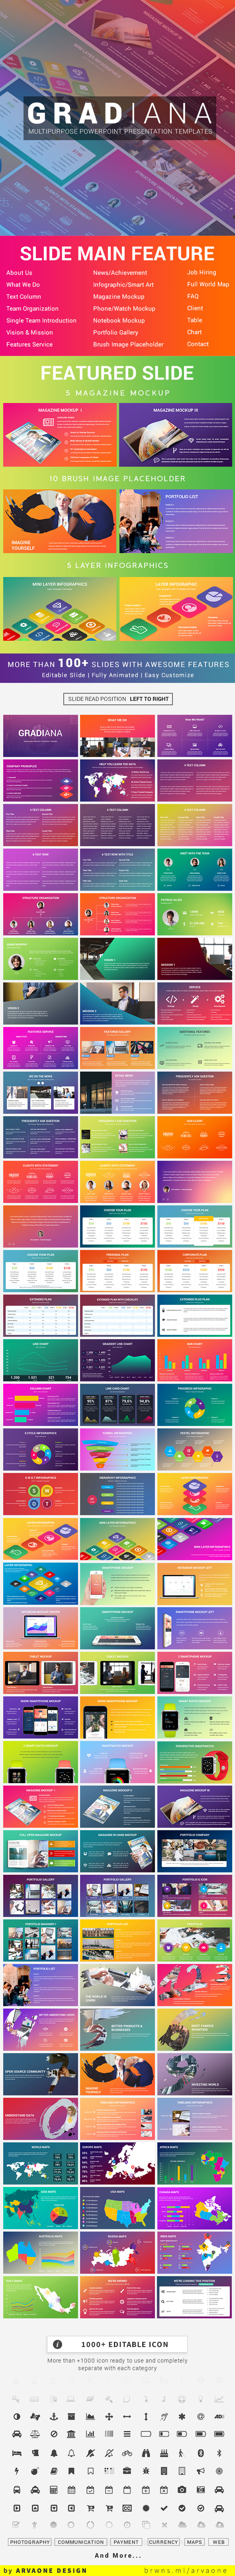 Gradiana Multipurpose PowerPoint Presentation Templates - Creative PowerPoint Templates